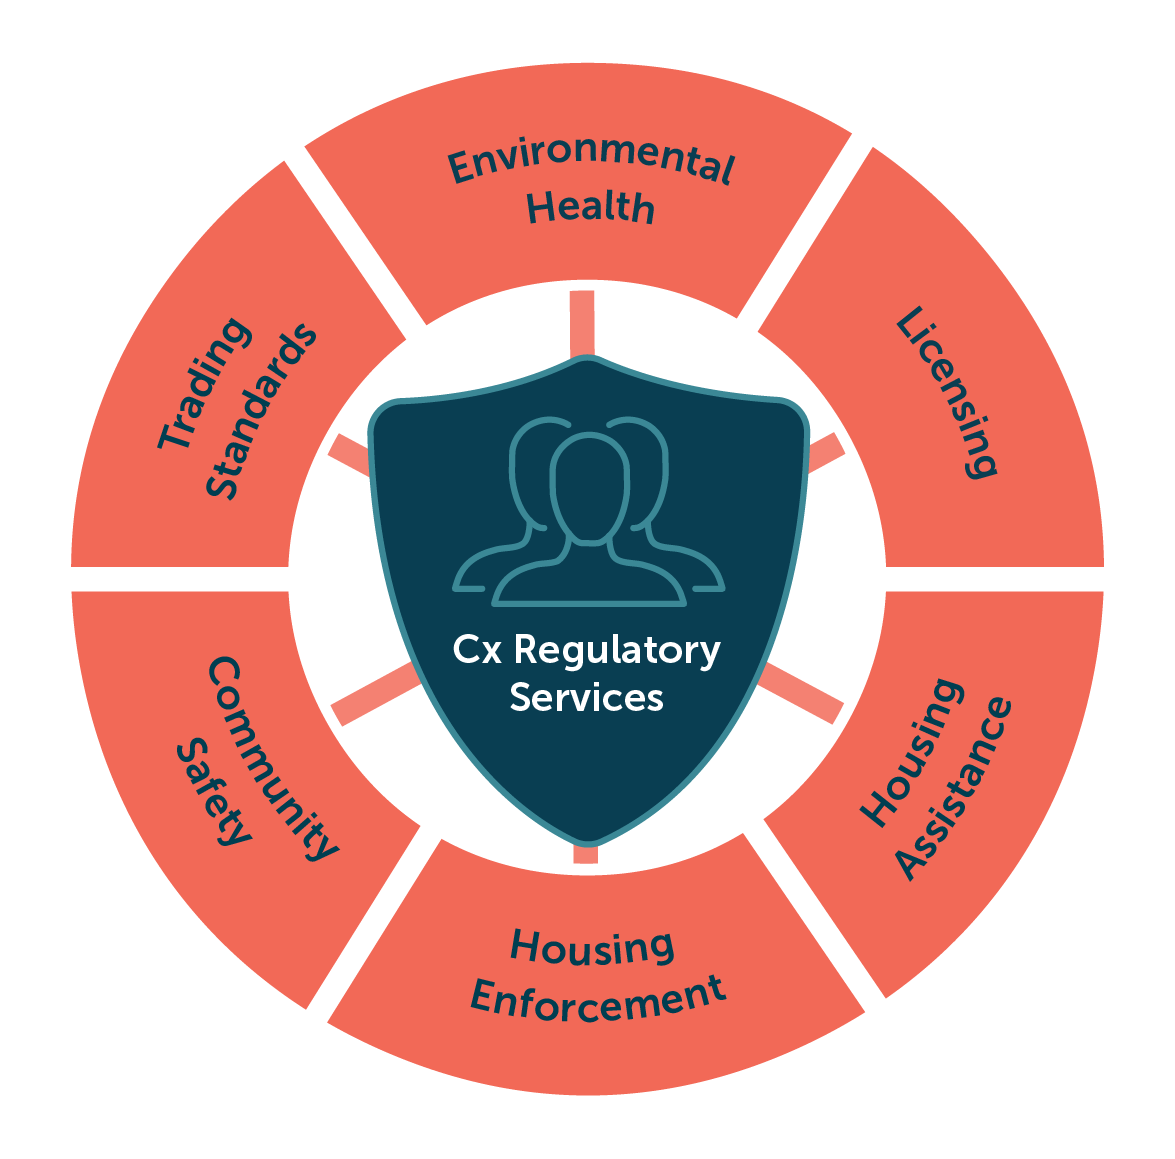 Cx Community Protection infographic 6 segment_Cx Regulatory Services.png